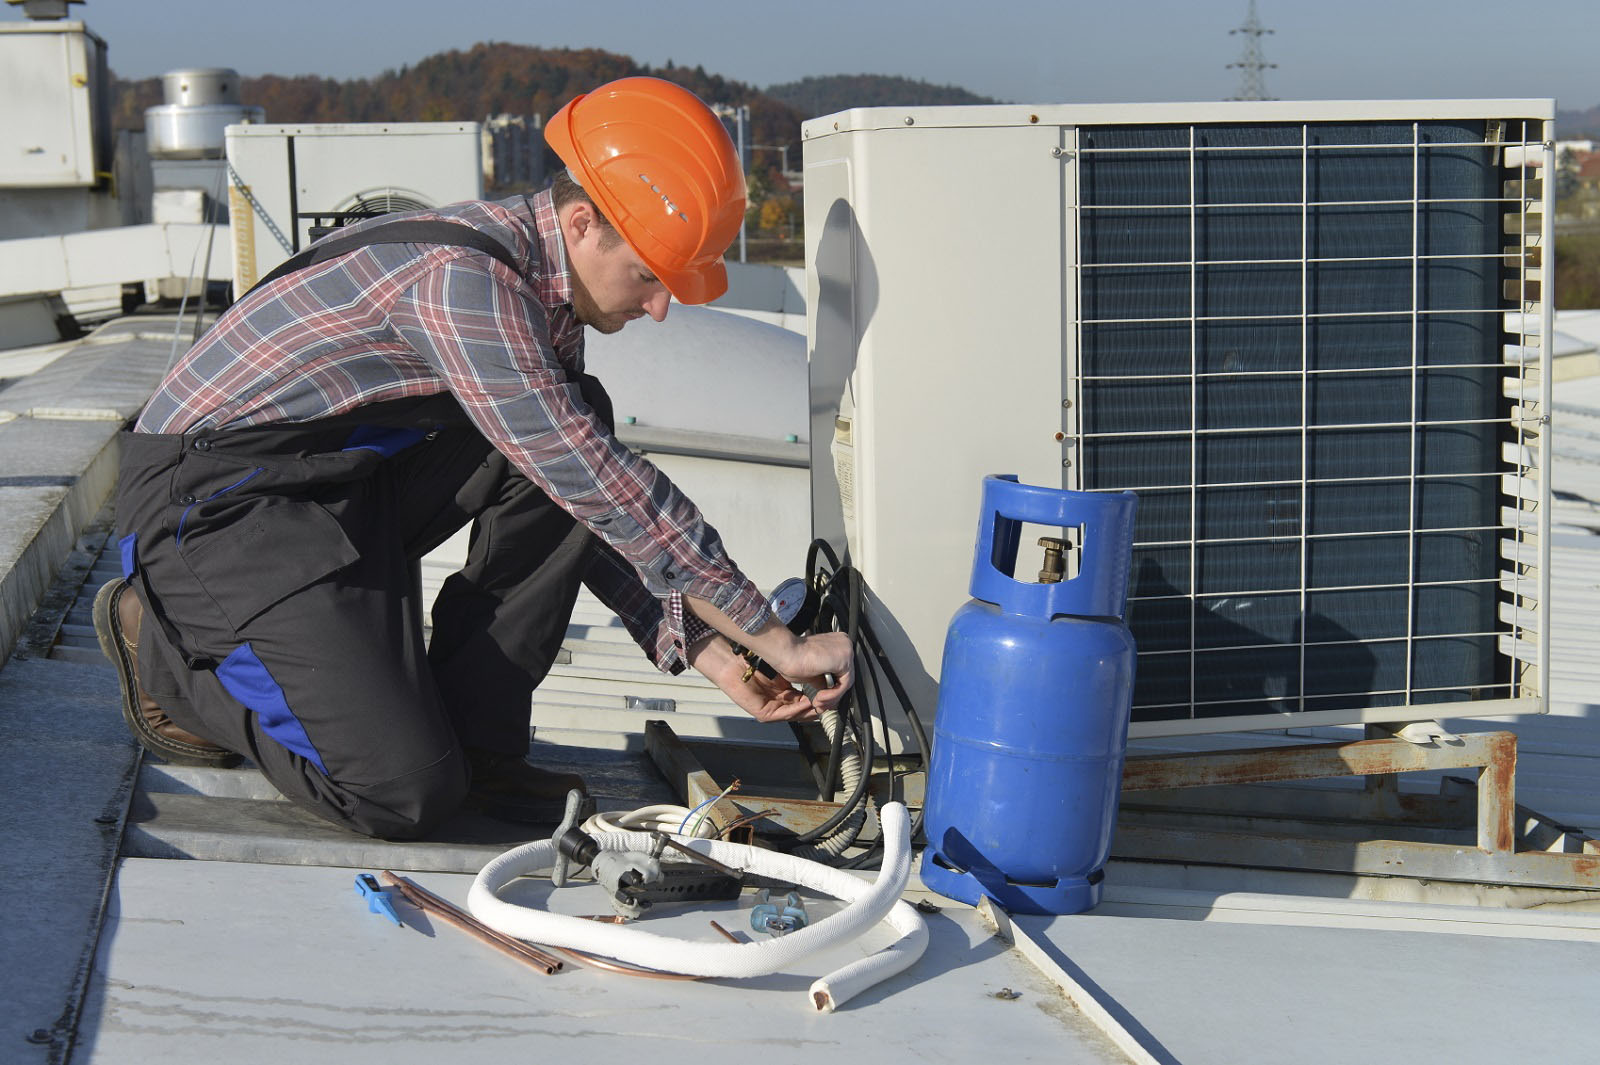 24 Hour Heating And Air Conditioning Repair Near Me